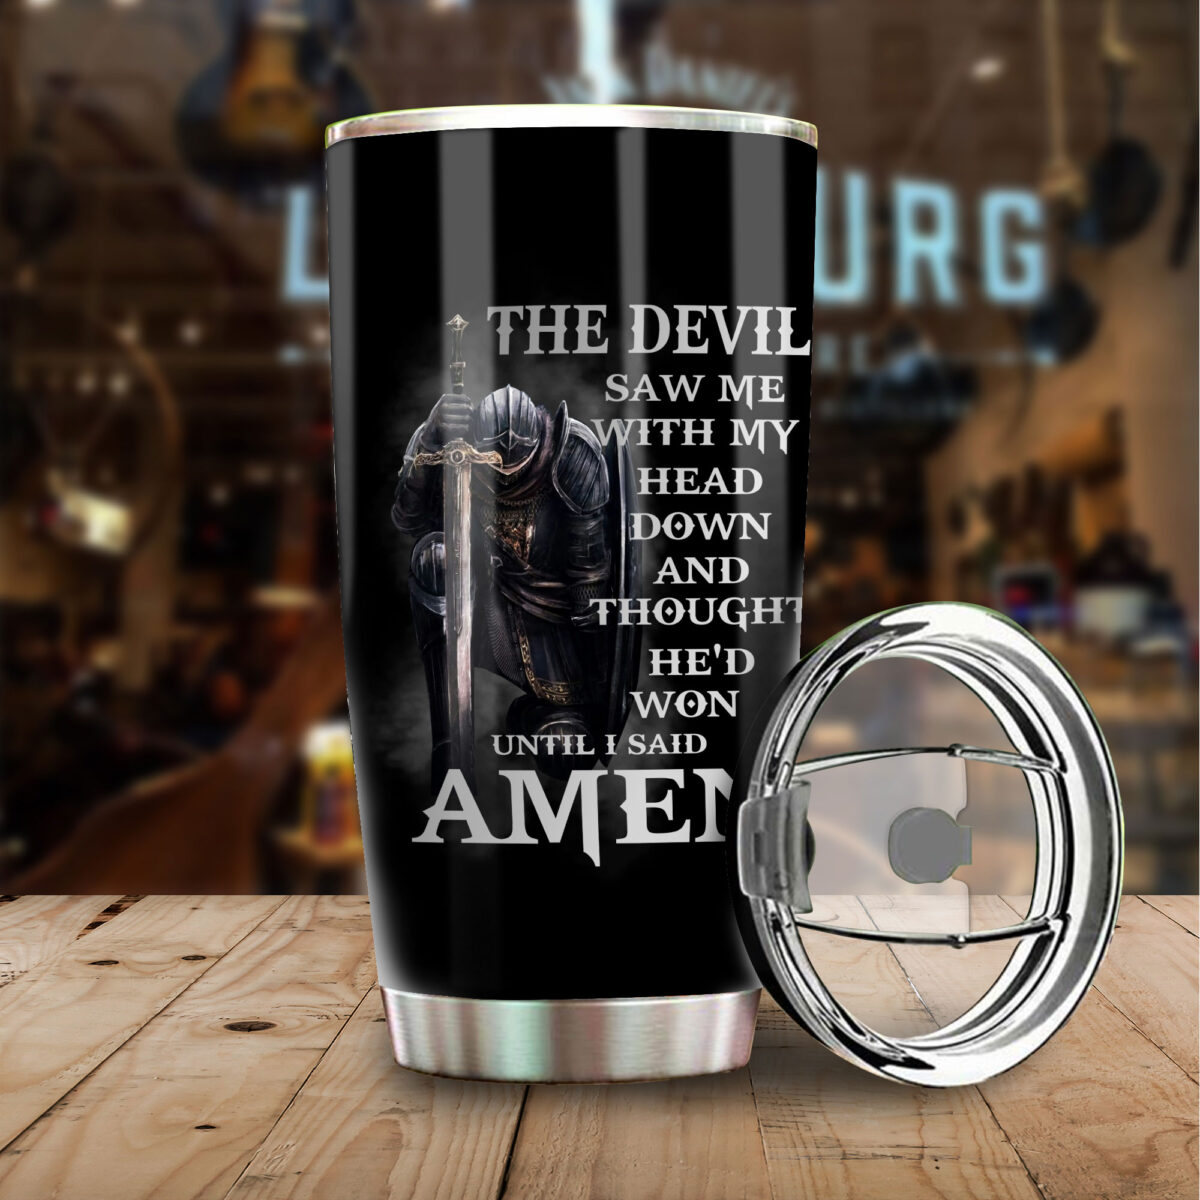 knights templar the devil saw me with my head down and thought hed won until i said amen stainless steel tumbler 3